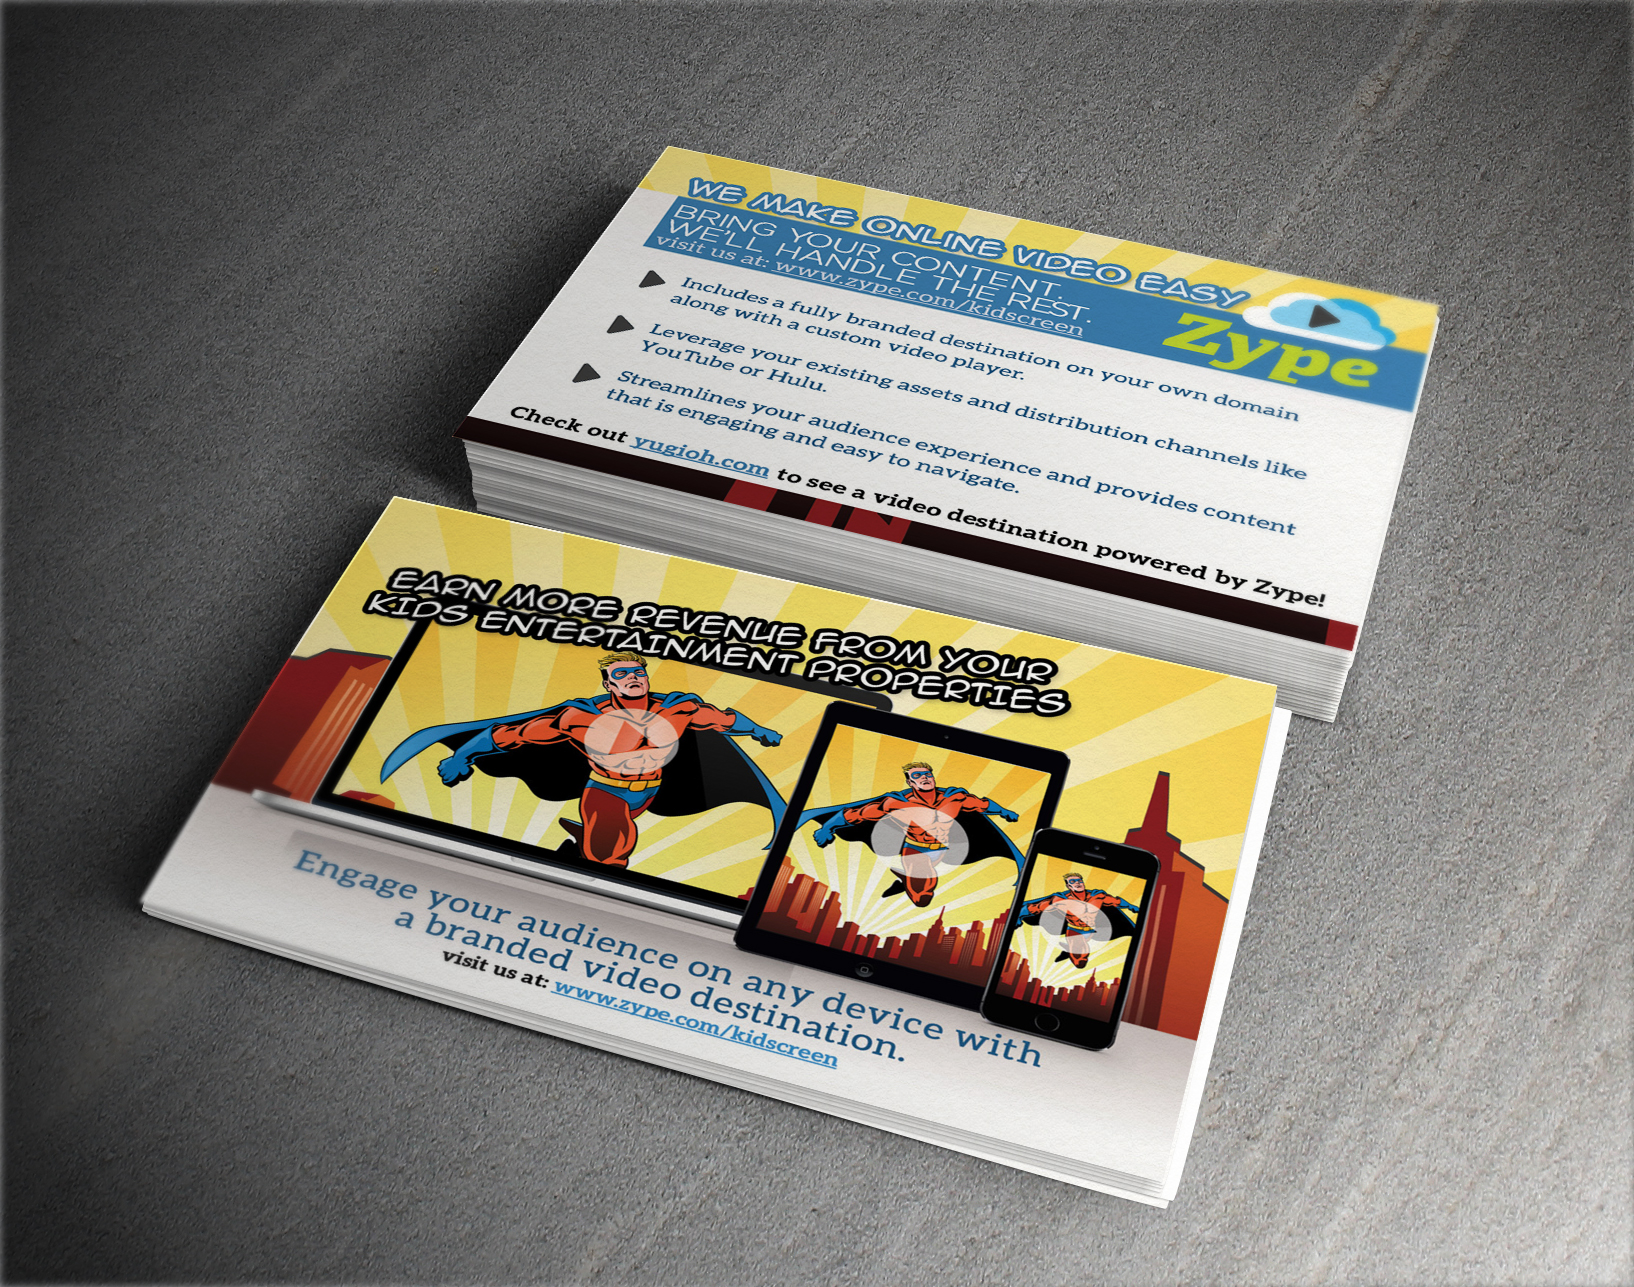 Postcard handout design for  Zype  - American based video platform business.